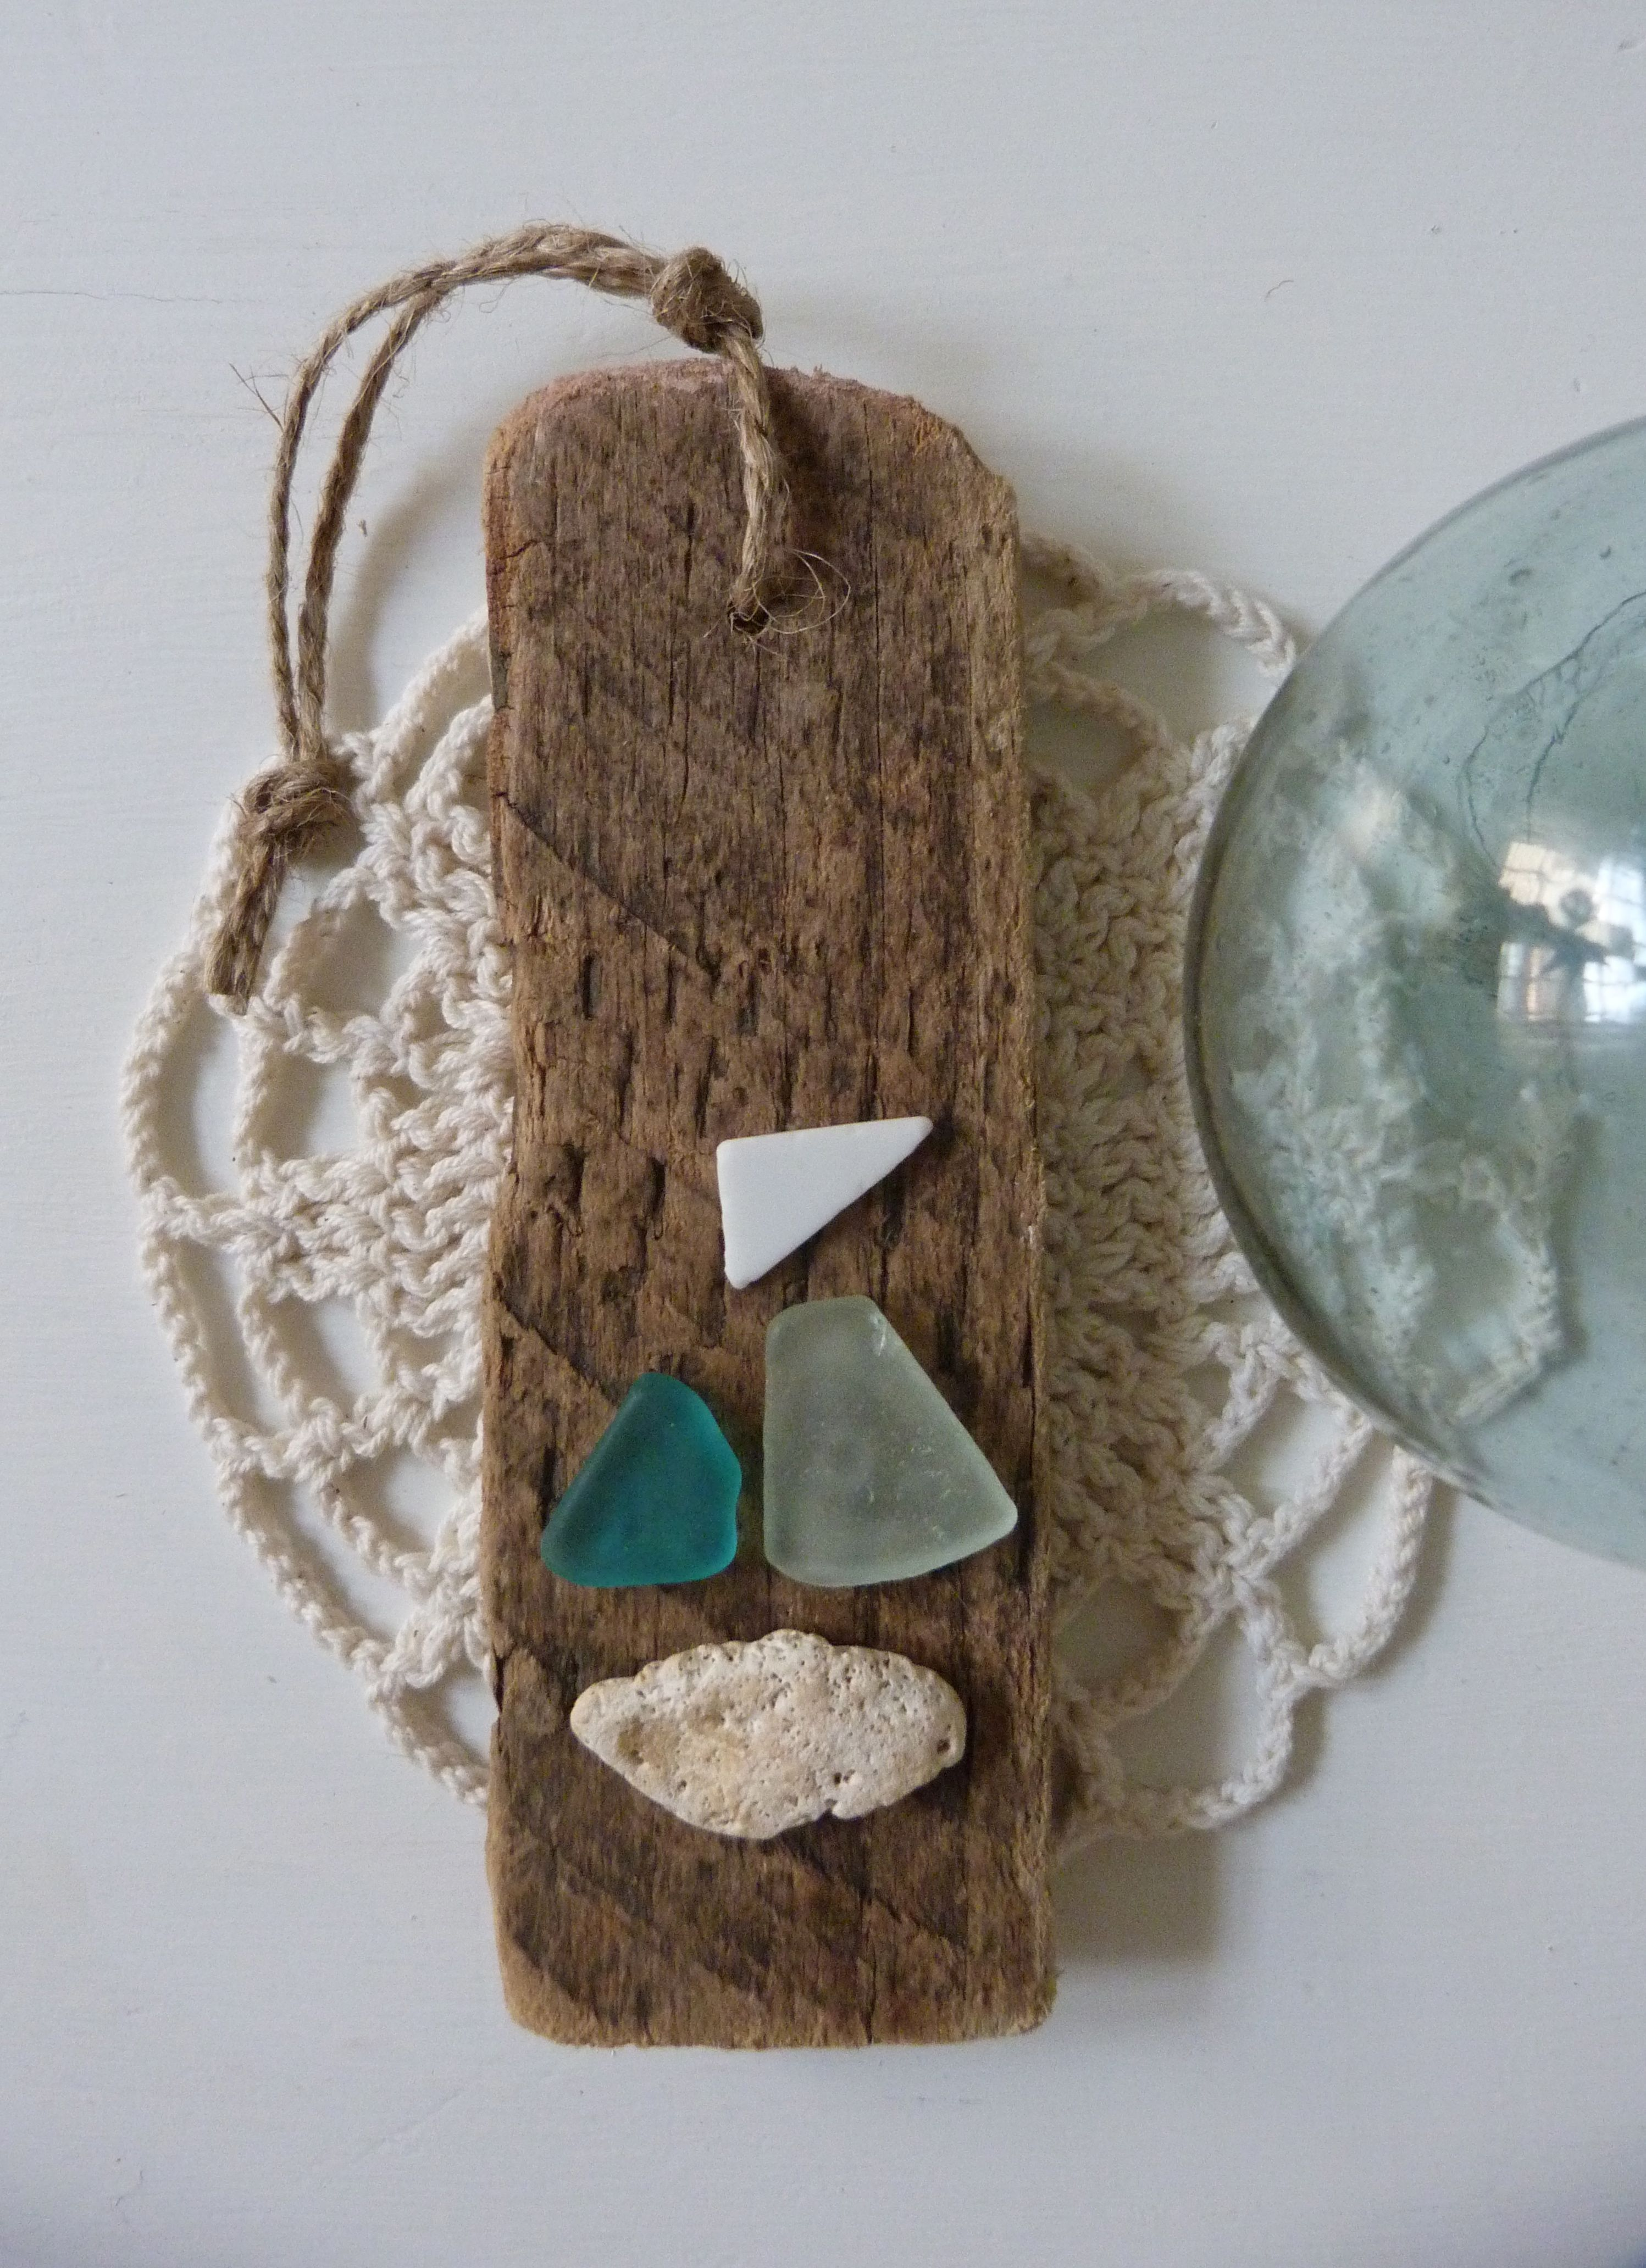 driftwood sea glass sea pottery decoration for a beach christmas or any time